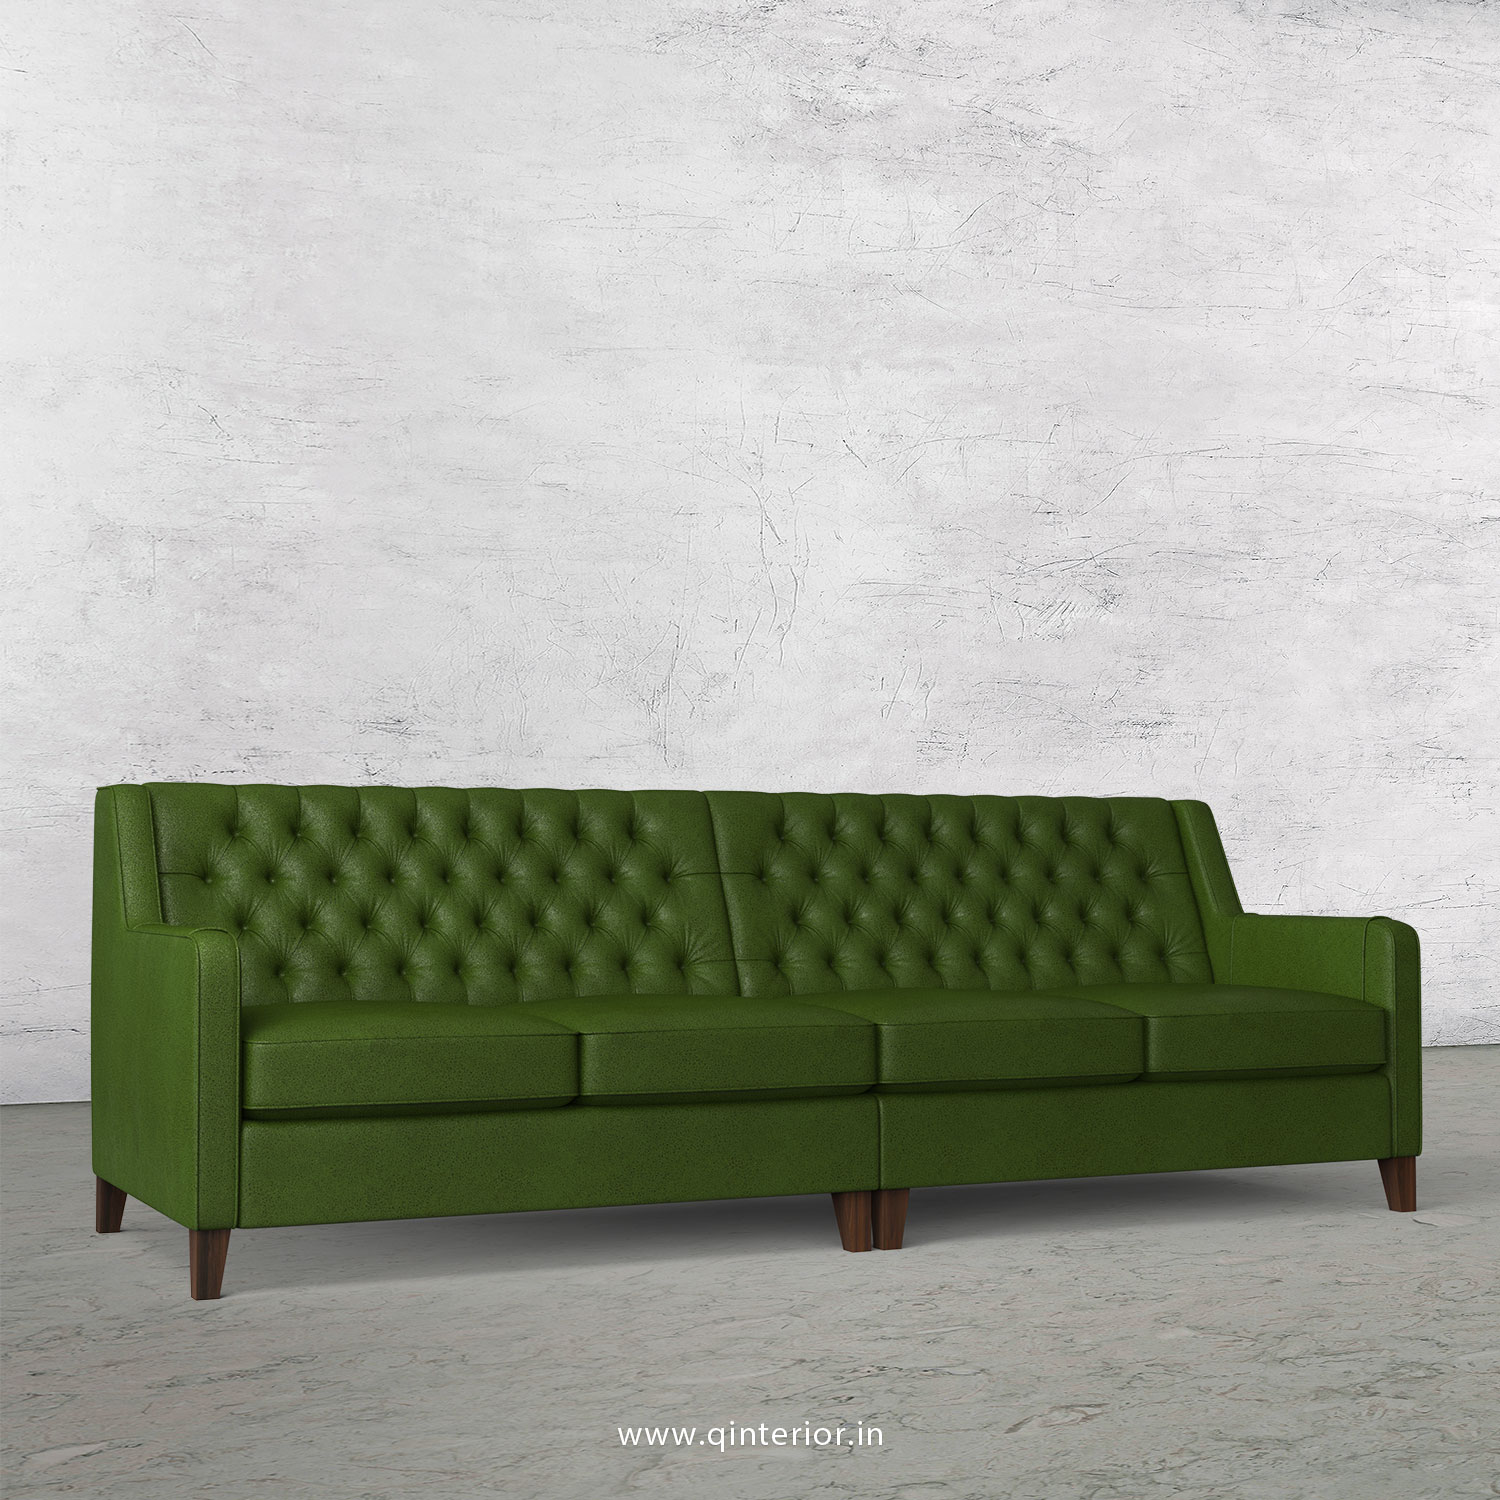 Eligence 4 Seater Sofa in Fab Leather Fabric - SFA011 FL04